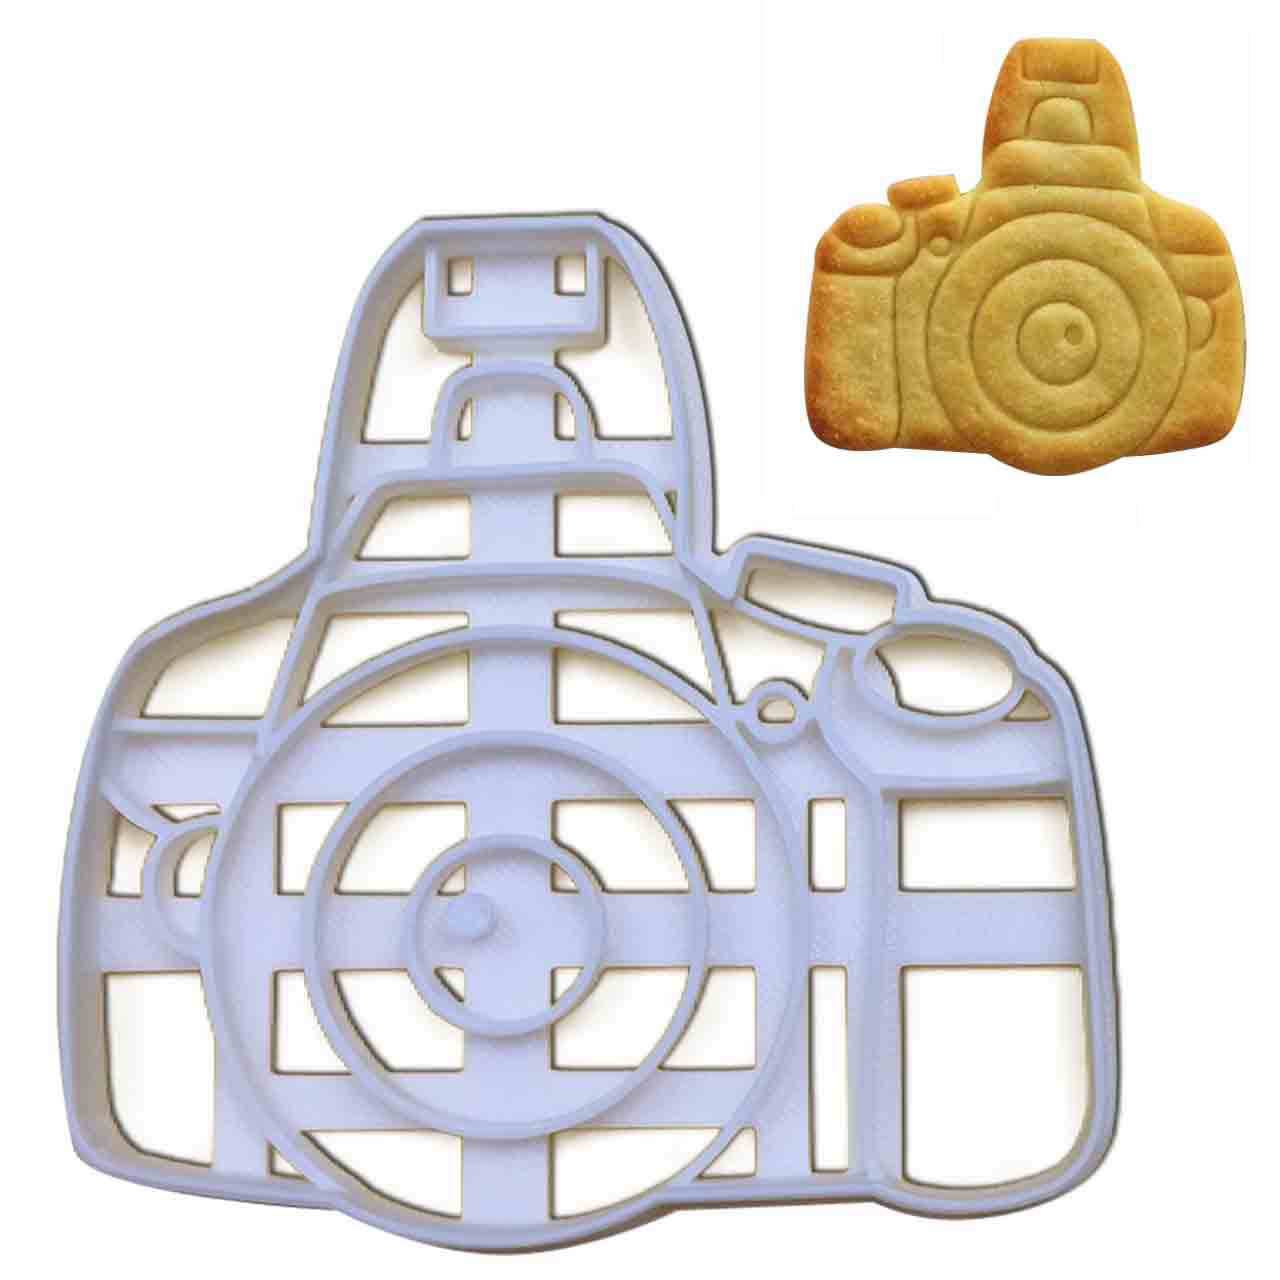 DSLR camera cookie cutter pressed on fondant